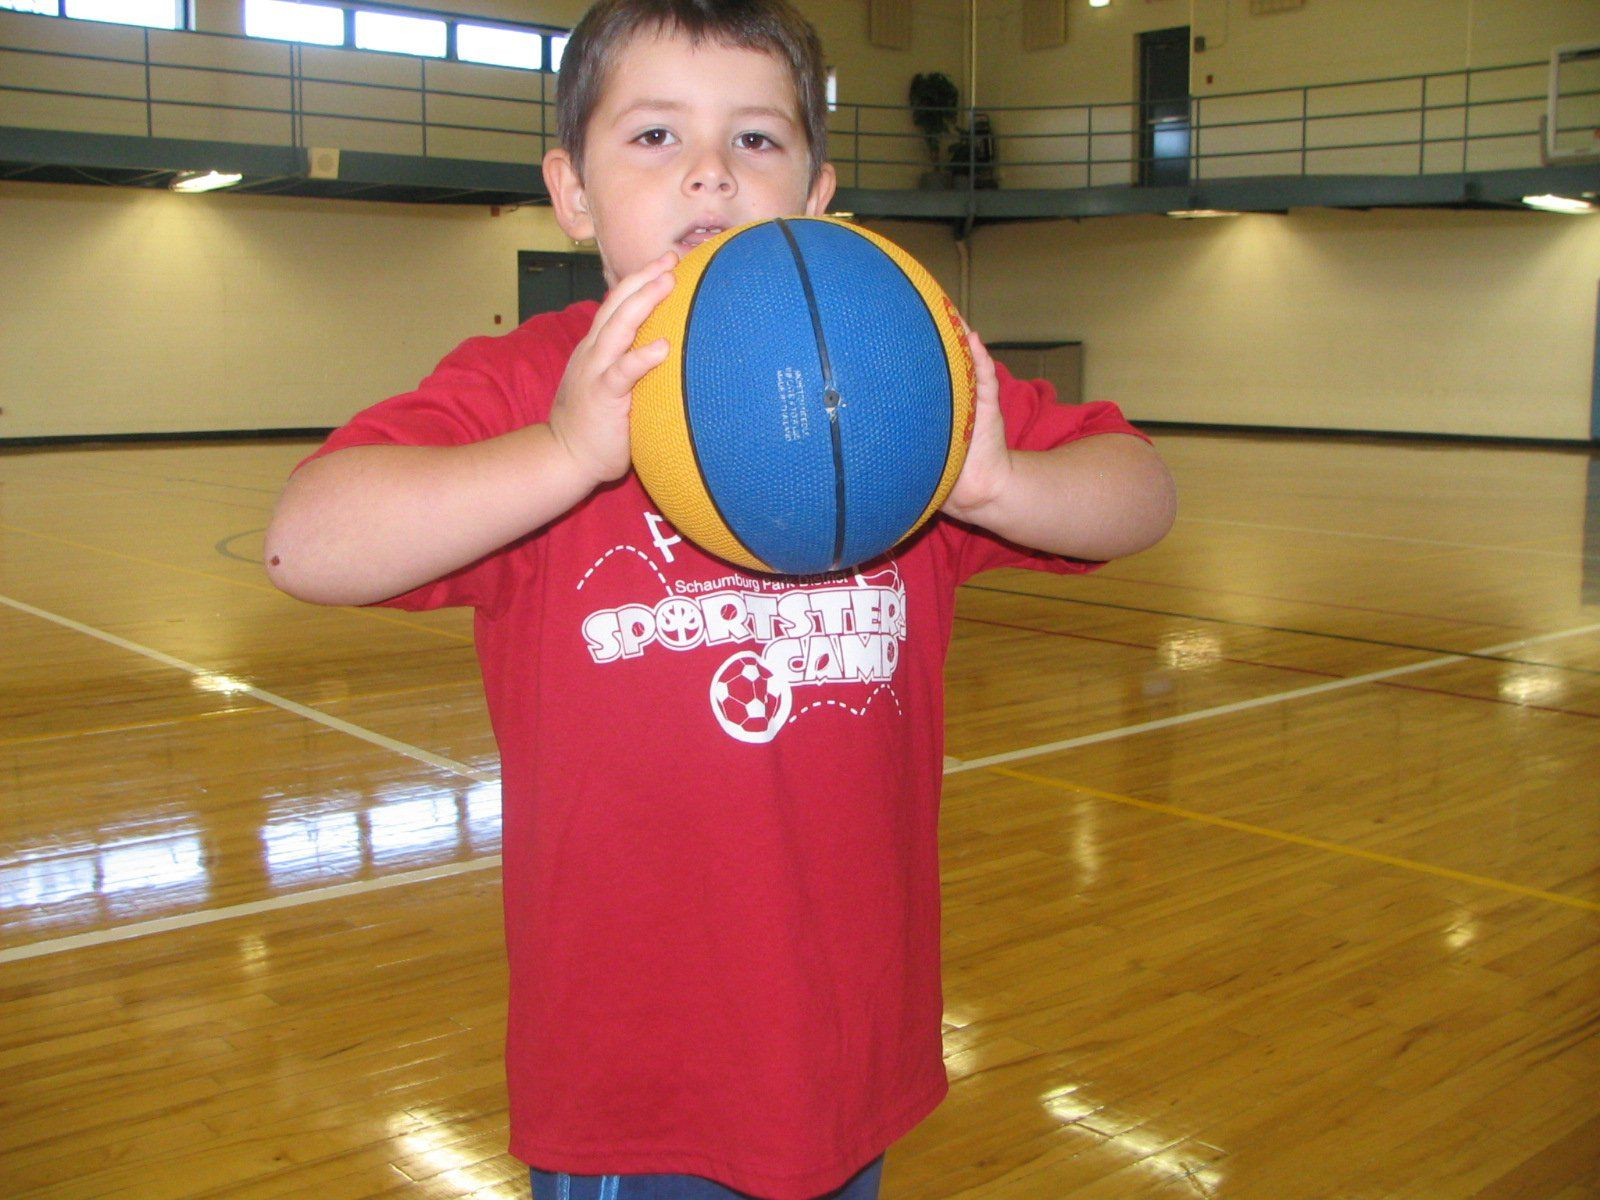 How To Teach Young Children To Pass A Basketball Teaching Young Children Basketball Basketball Drills For Kids